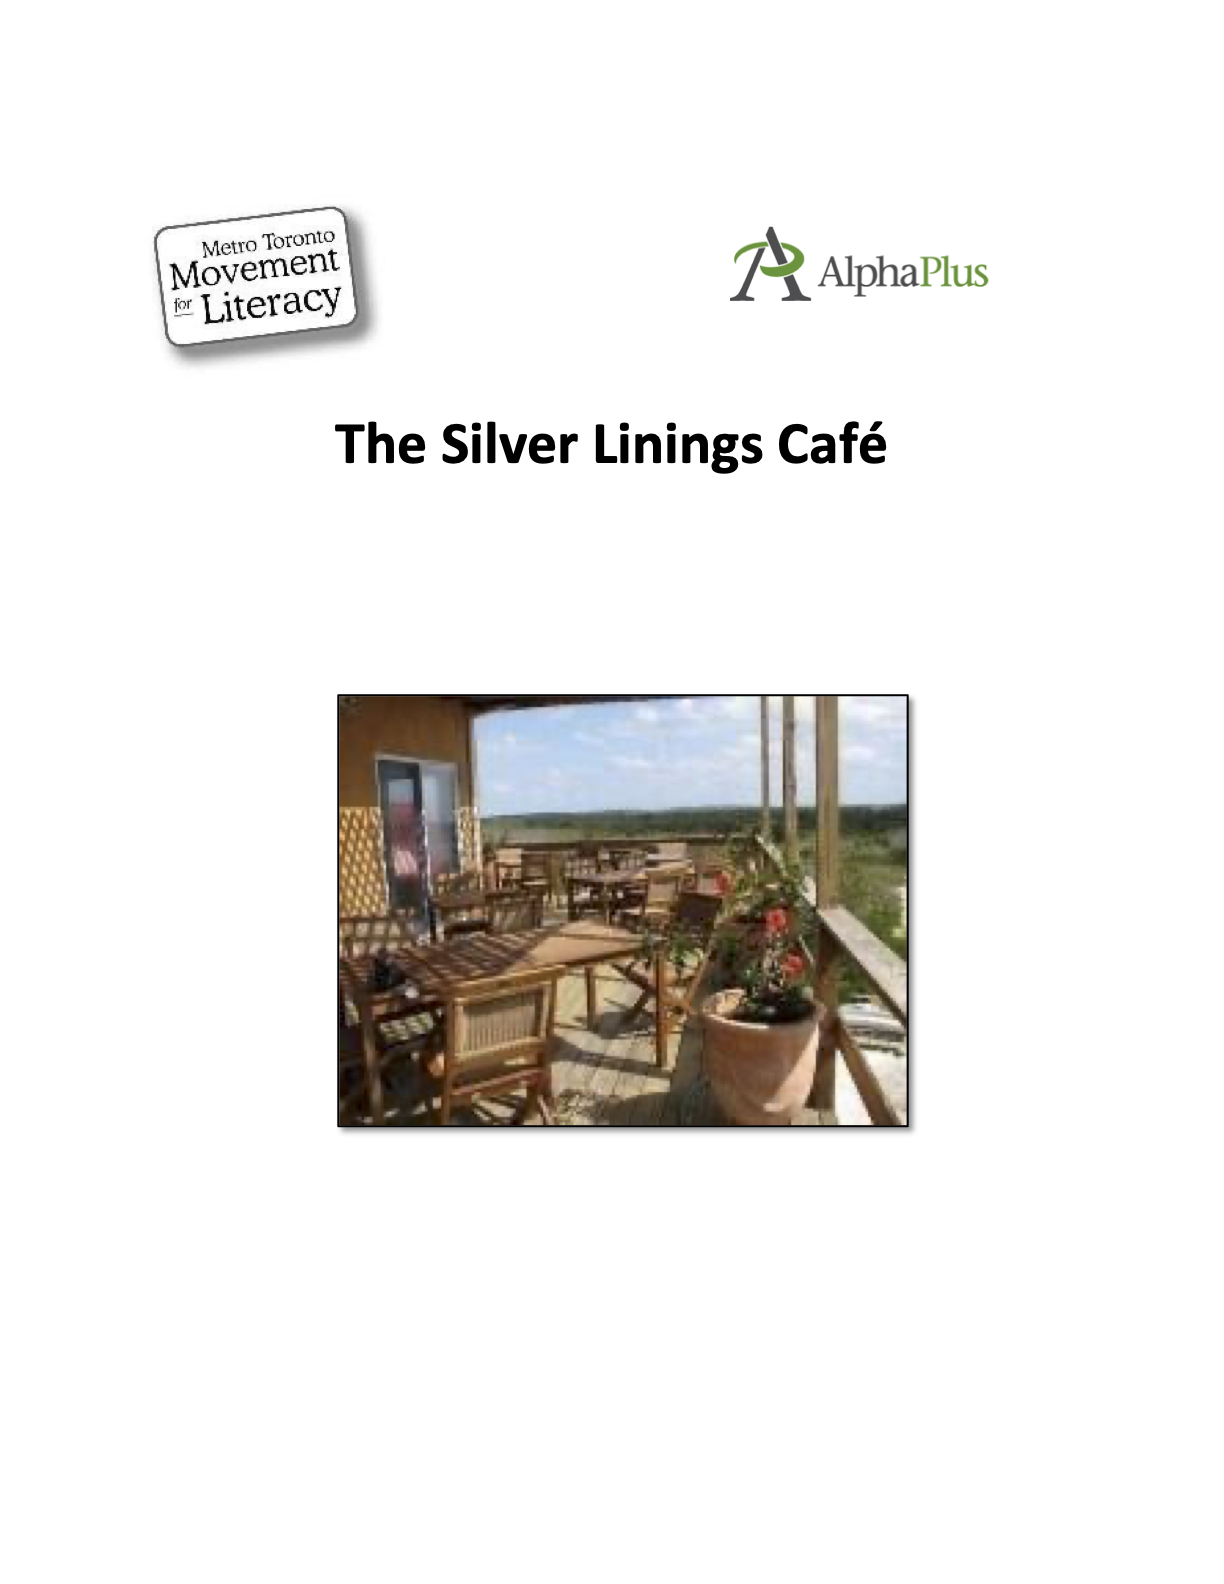 Cover image for The Silver Lining Café and Zoom Tools